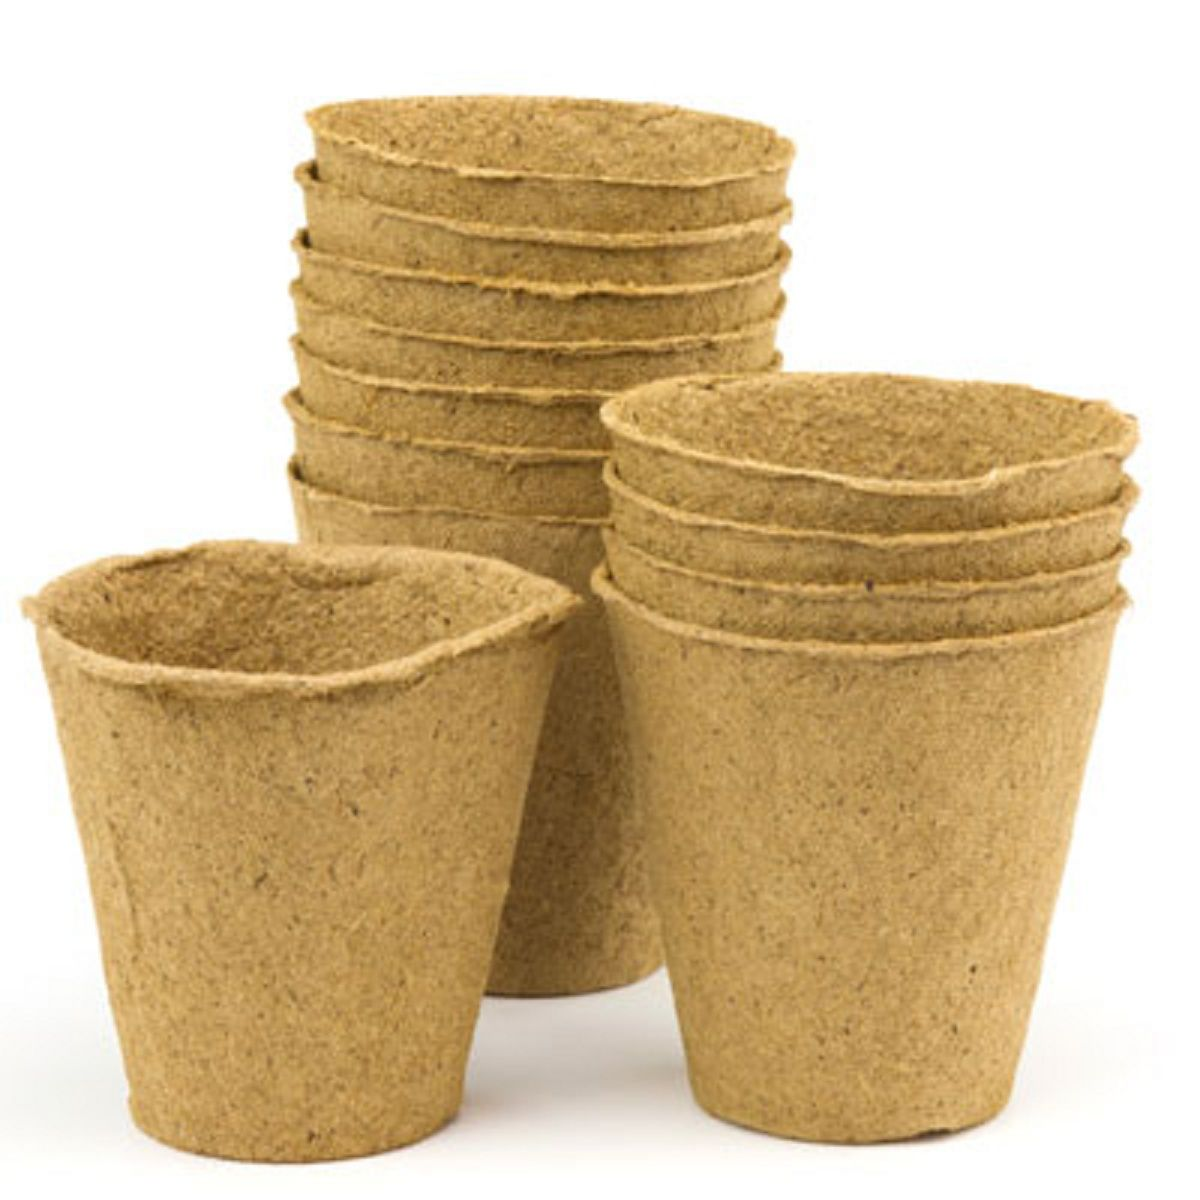 Image result for plant pots